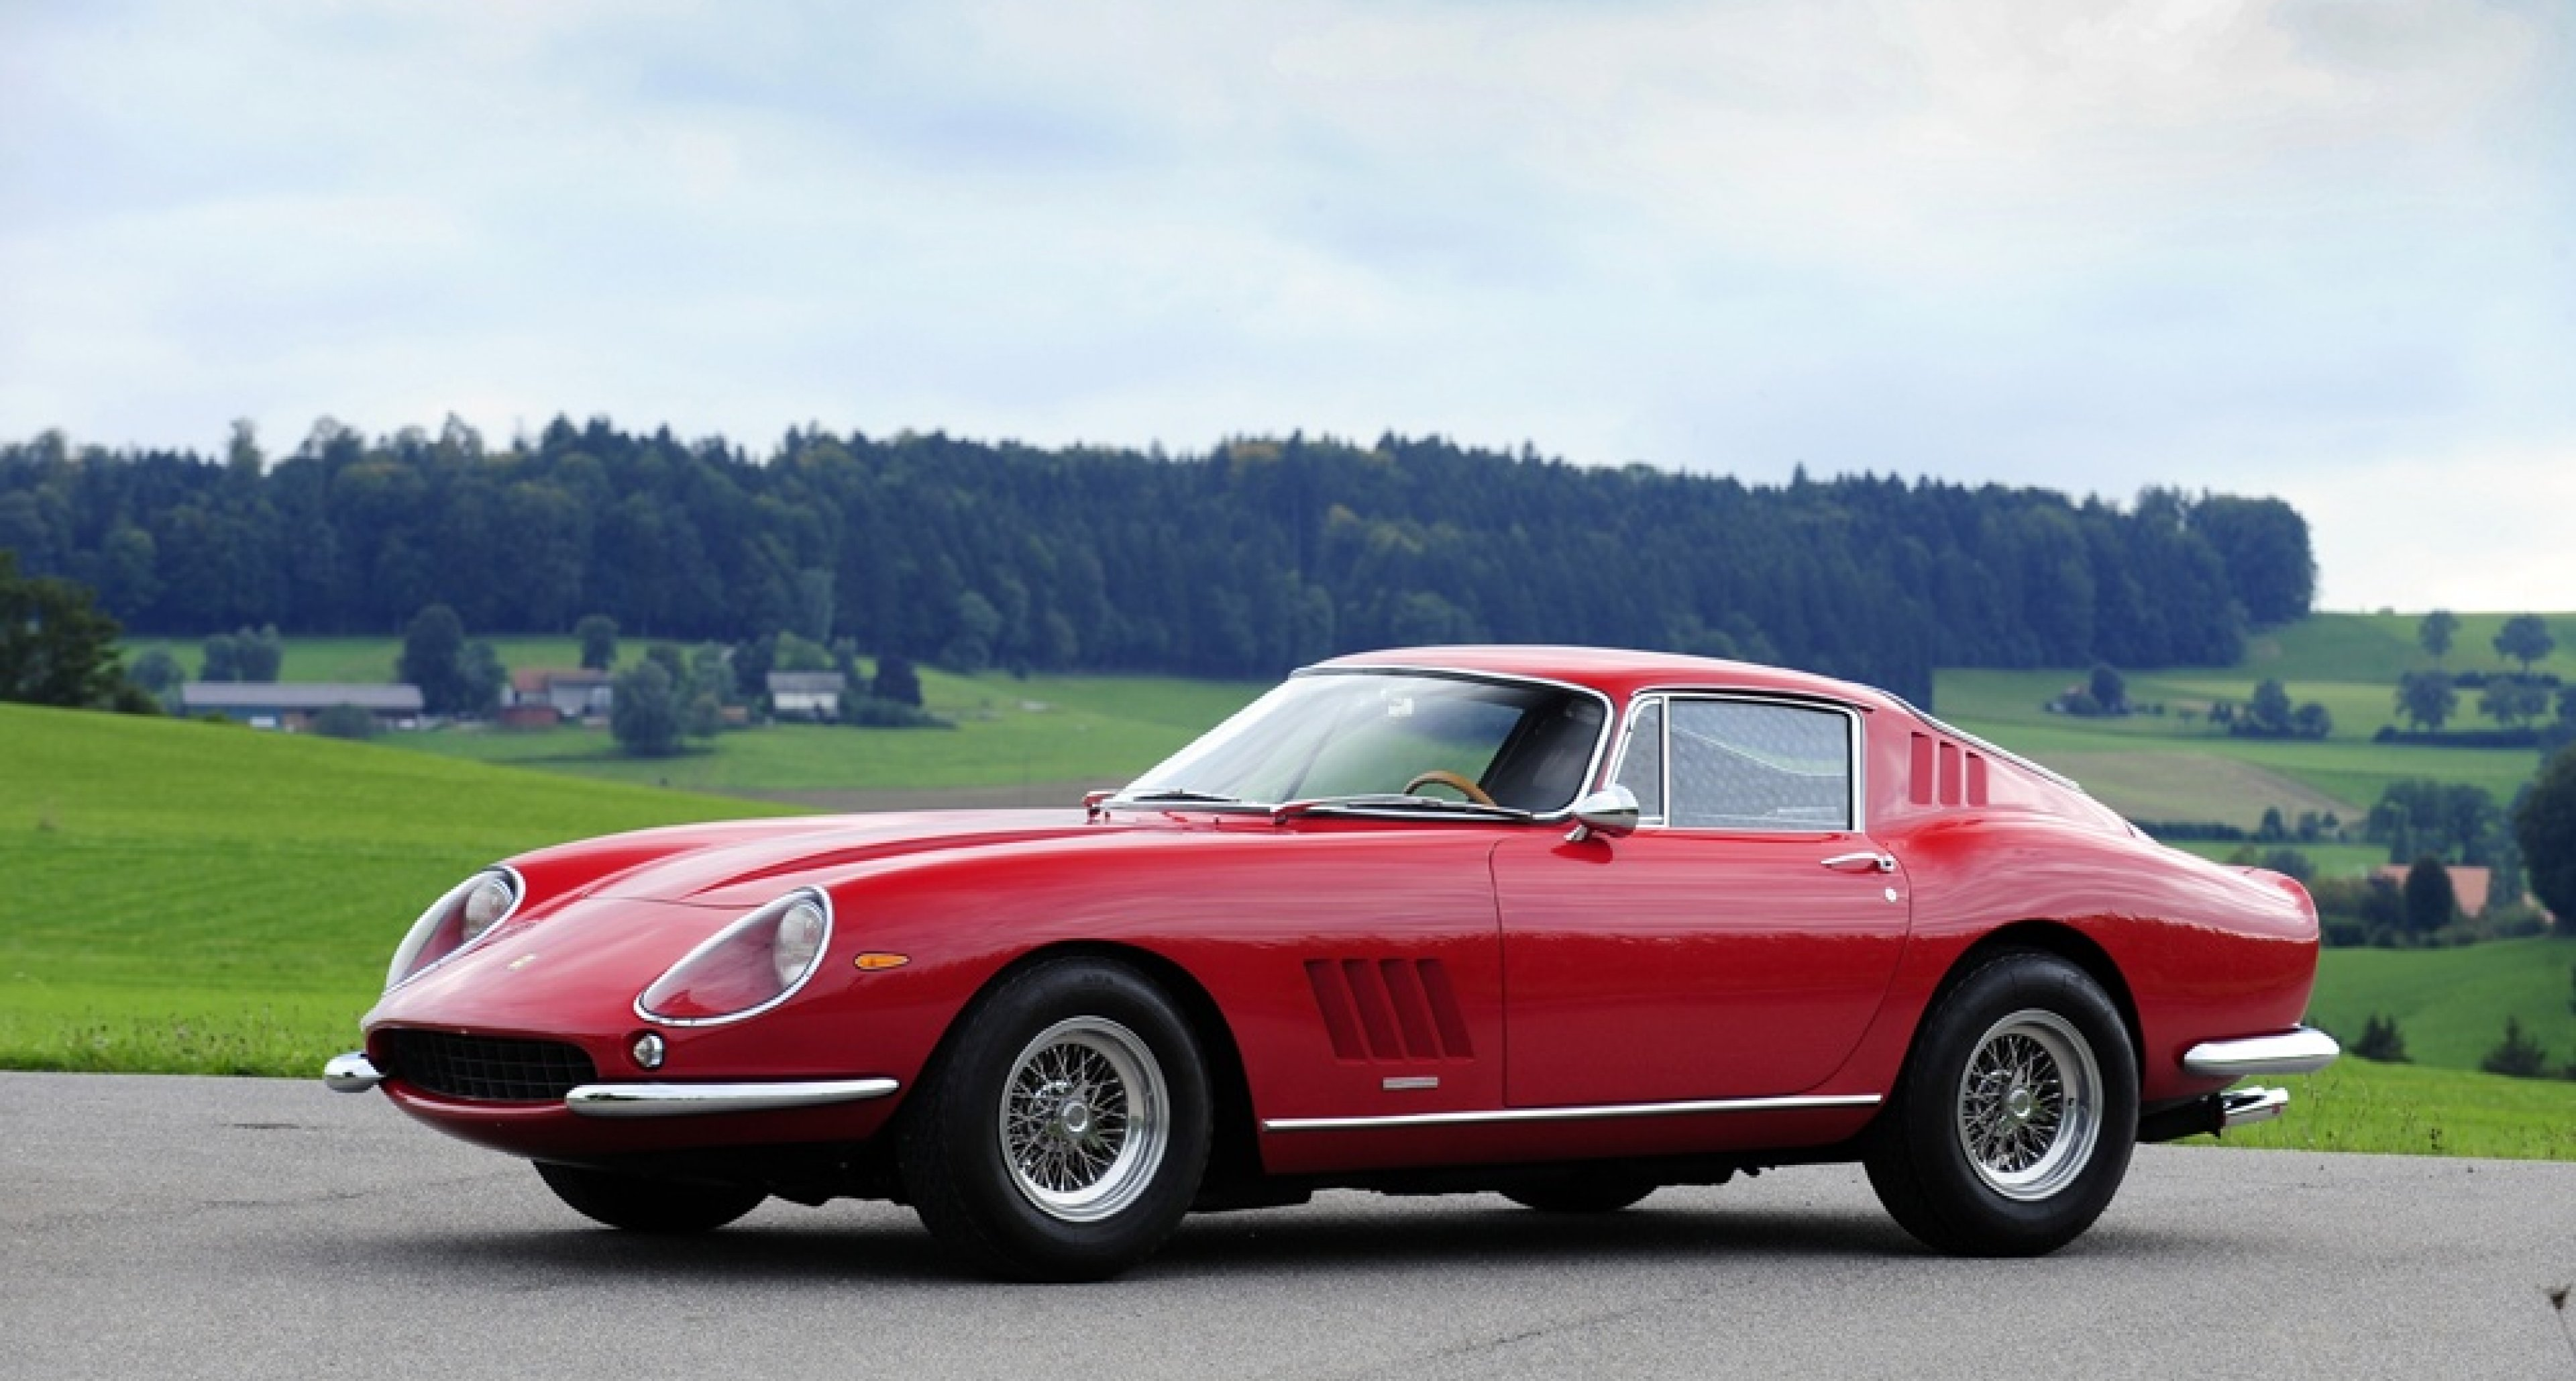 Polanski S Ferrari 275 Gtb 4 On Sale For The First Time In 25 Years Classic Driver Magazine